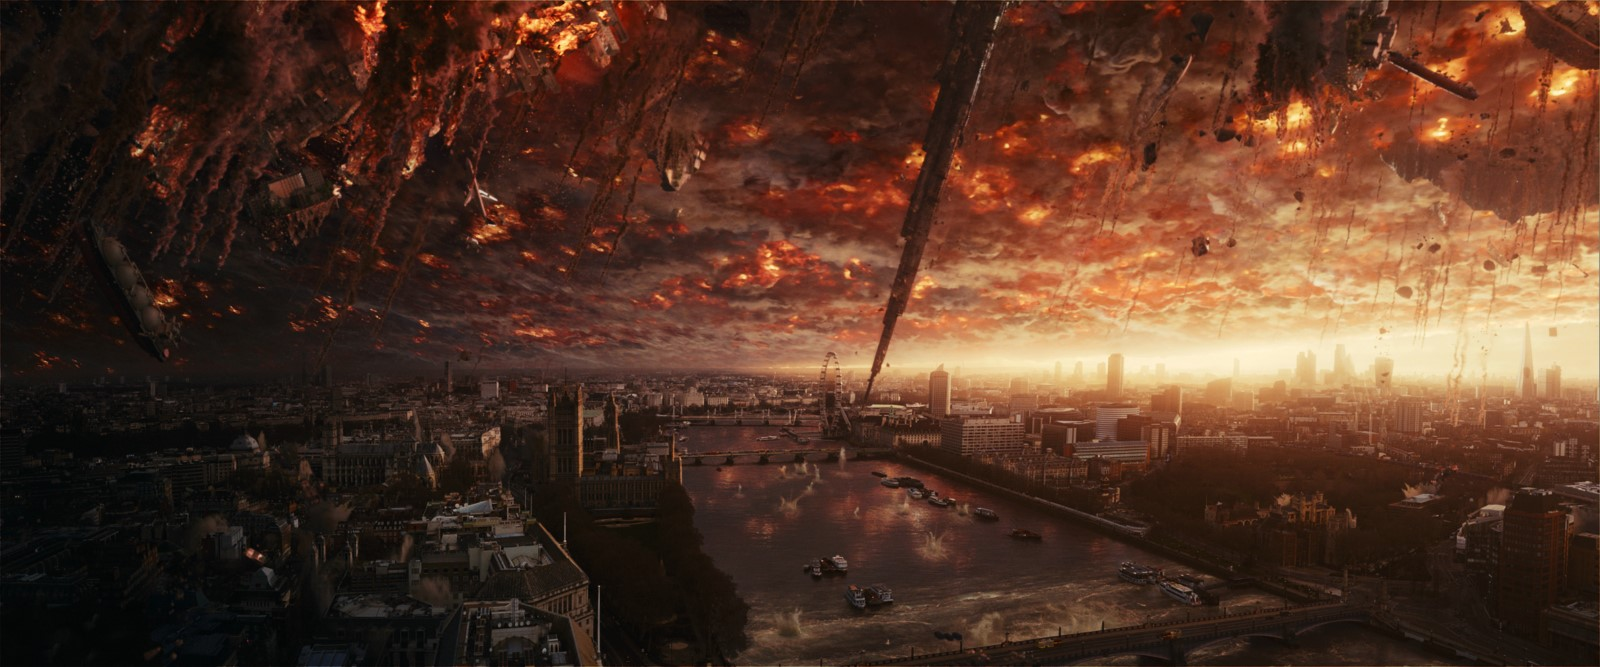 INDEPENDENCE DAY RESURGENCE - Première image 3 film First Picture movie 2016 - Go with the Blog